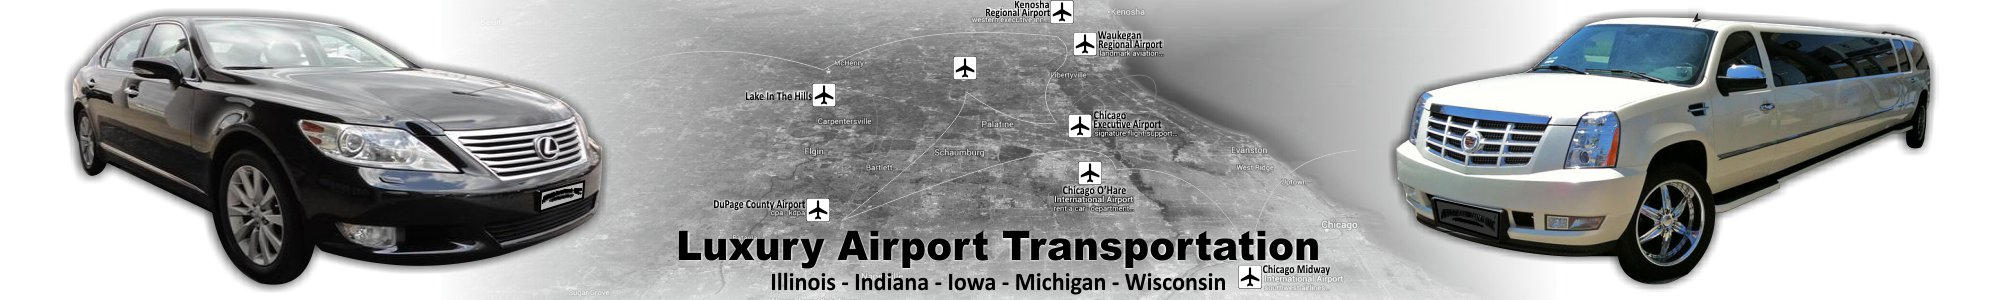 Illinois Luxury Airport Transportation by Affordable Limo Inc BW